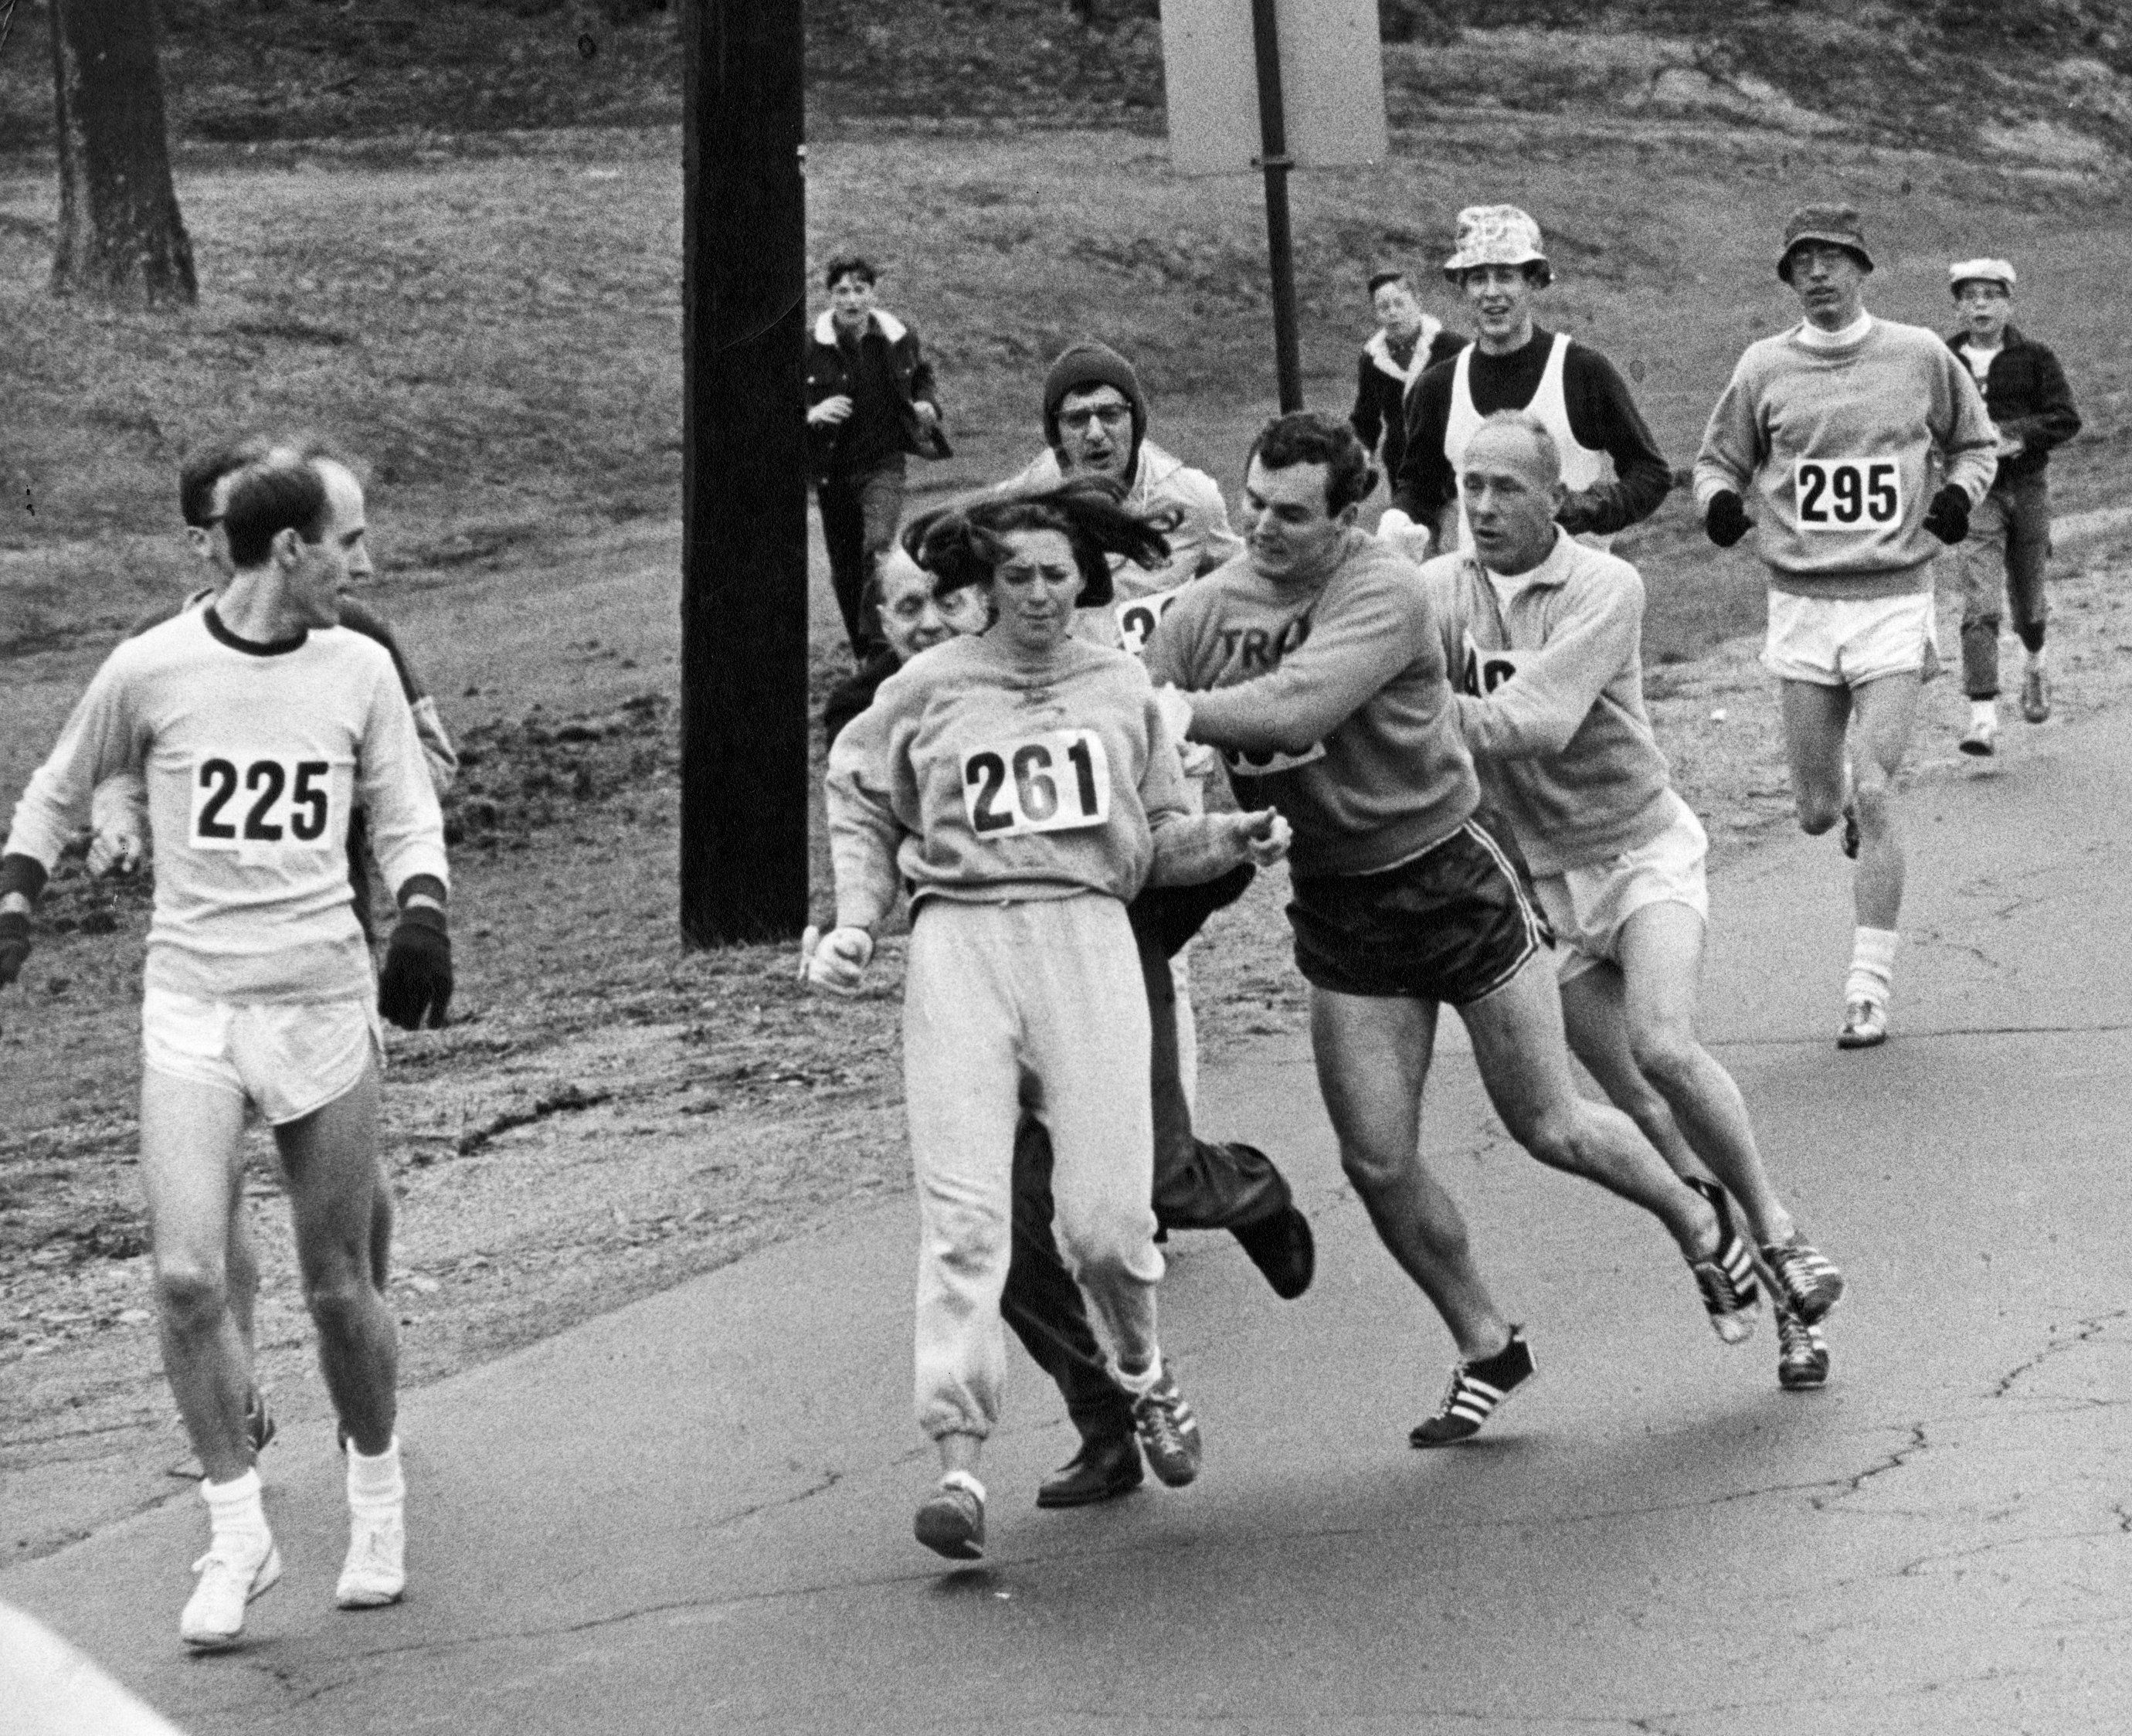 BOSTON, MA - APRIL 19: Kathrine Switzer, of Syracuse, N.Y., center, was spotted early in the Boston Marathon by Jock Semple, center right, who tried to rip the number off her shirt and remove her from the race. Switzer's friends intervened, allowing her to make her getaway to become the first woman to 'officially' run the Boston Marathon on April 19, 1967. (Paul Connell/The Boston Globe via Getty Images)